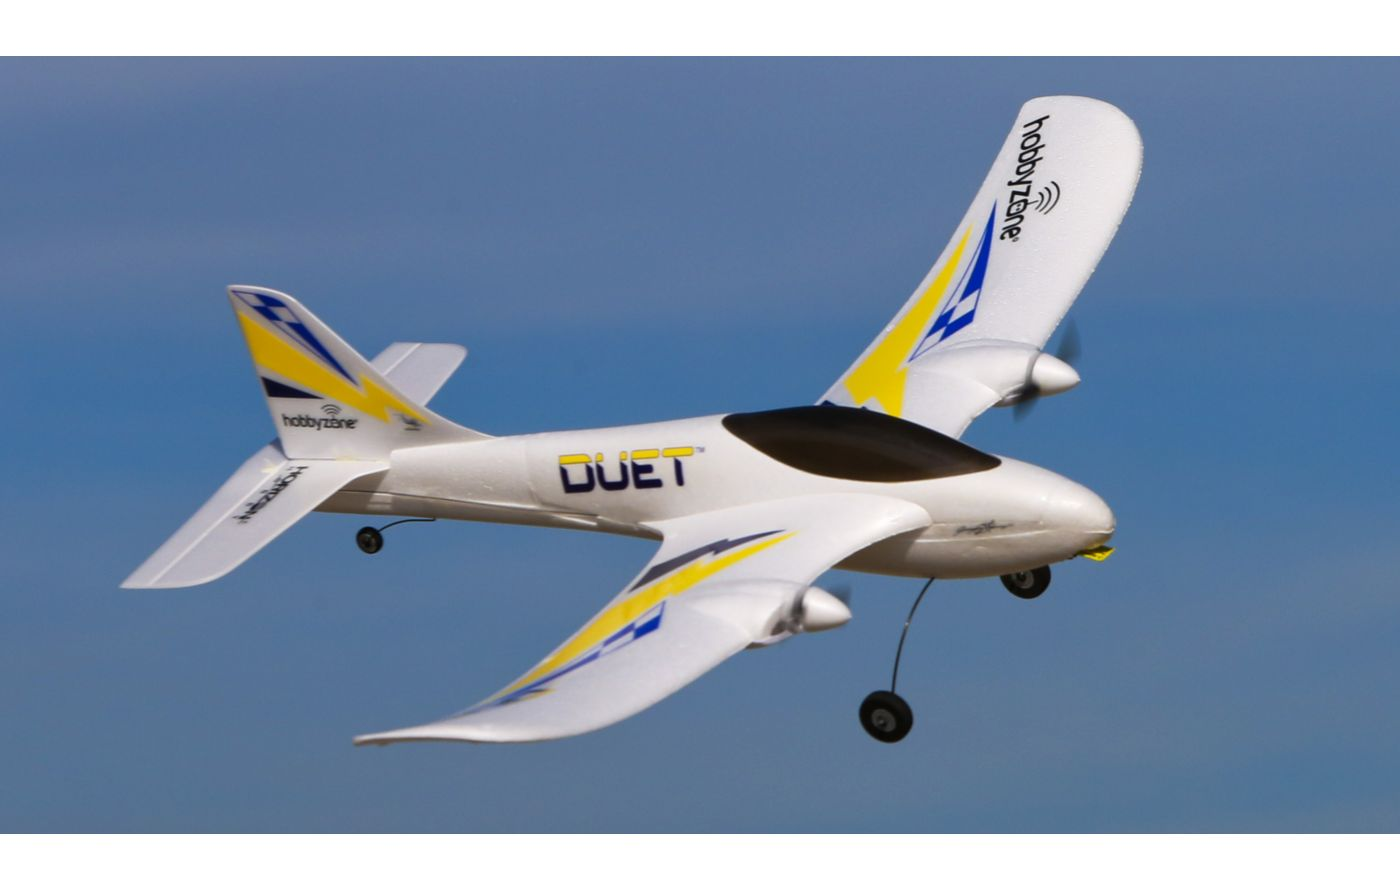 Image for Duet RTF from Force RC